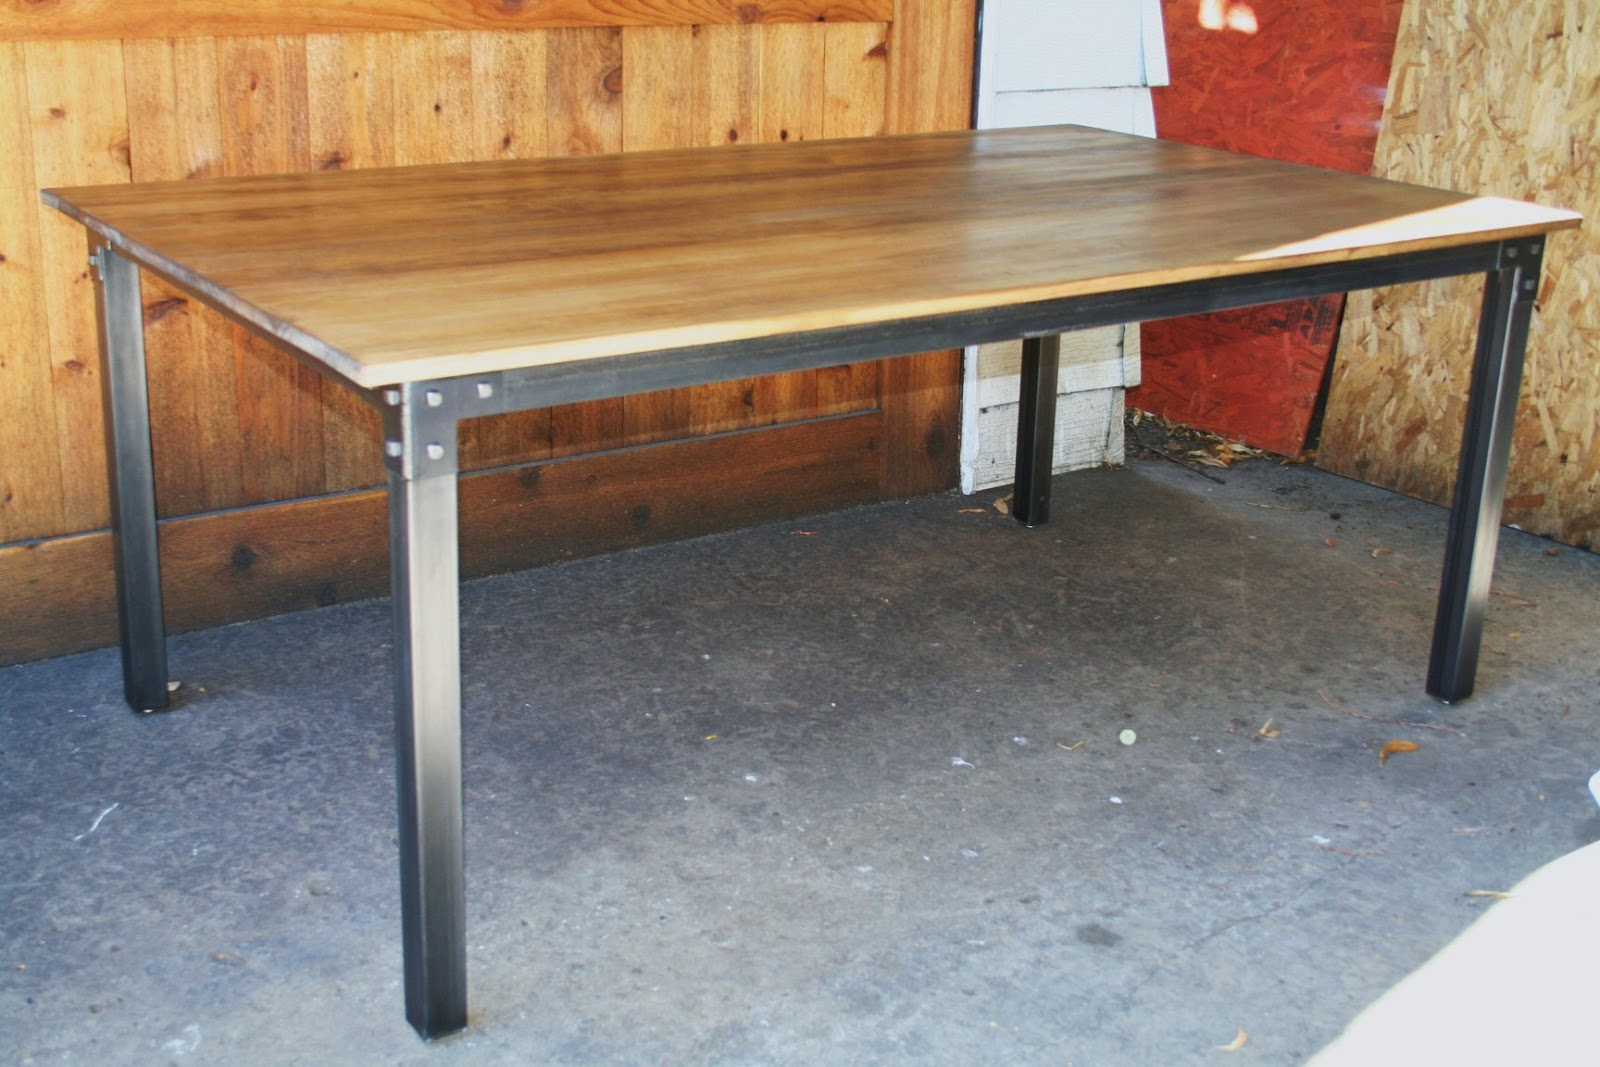 Industrial dining table - Industrial Dining Table Some Quick Orders A Big Dining Table And A Table Base The Customer Will Use With A Granite Top